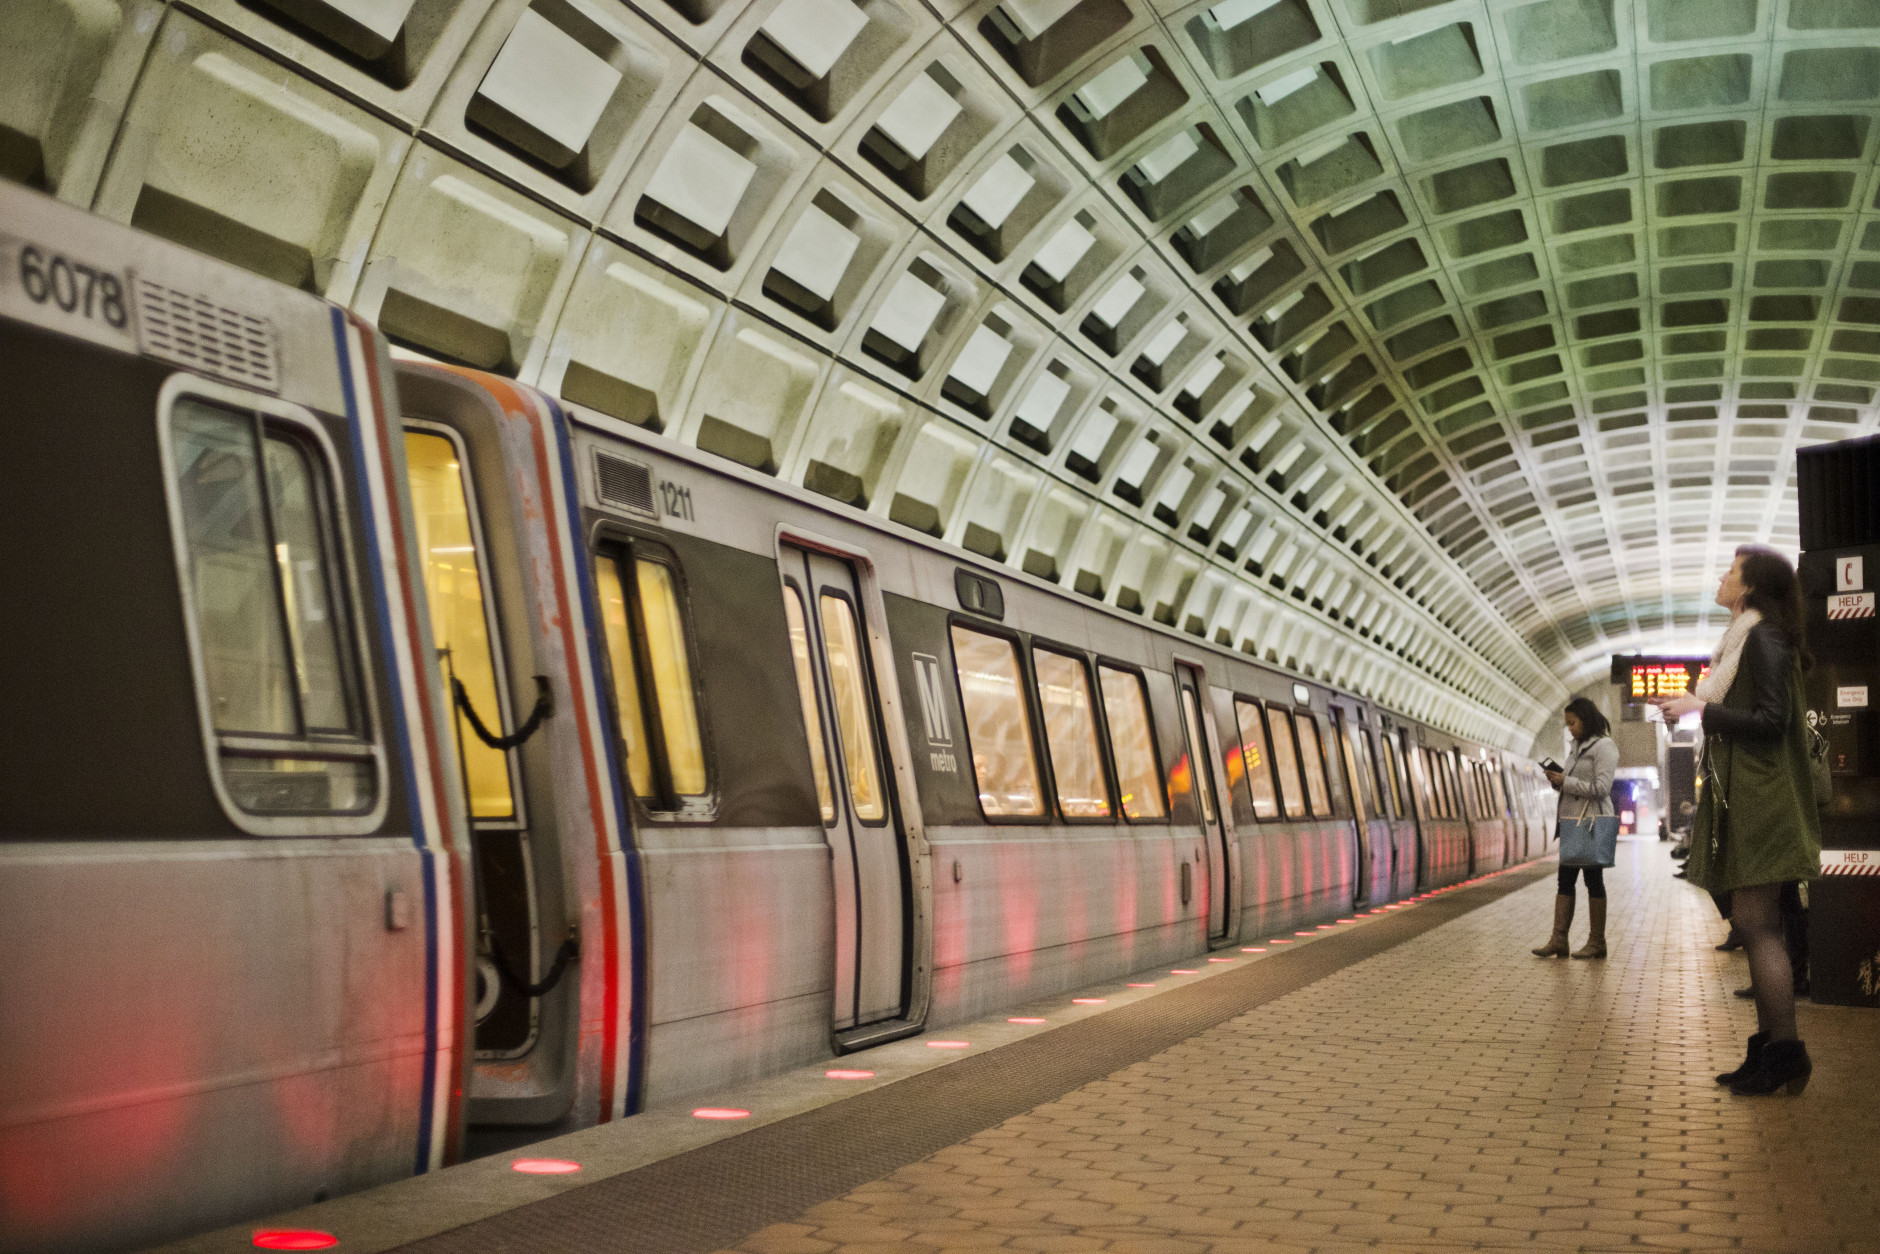 U.S. Secretary of Transportation transfers Metro safety oversight to FTA